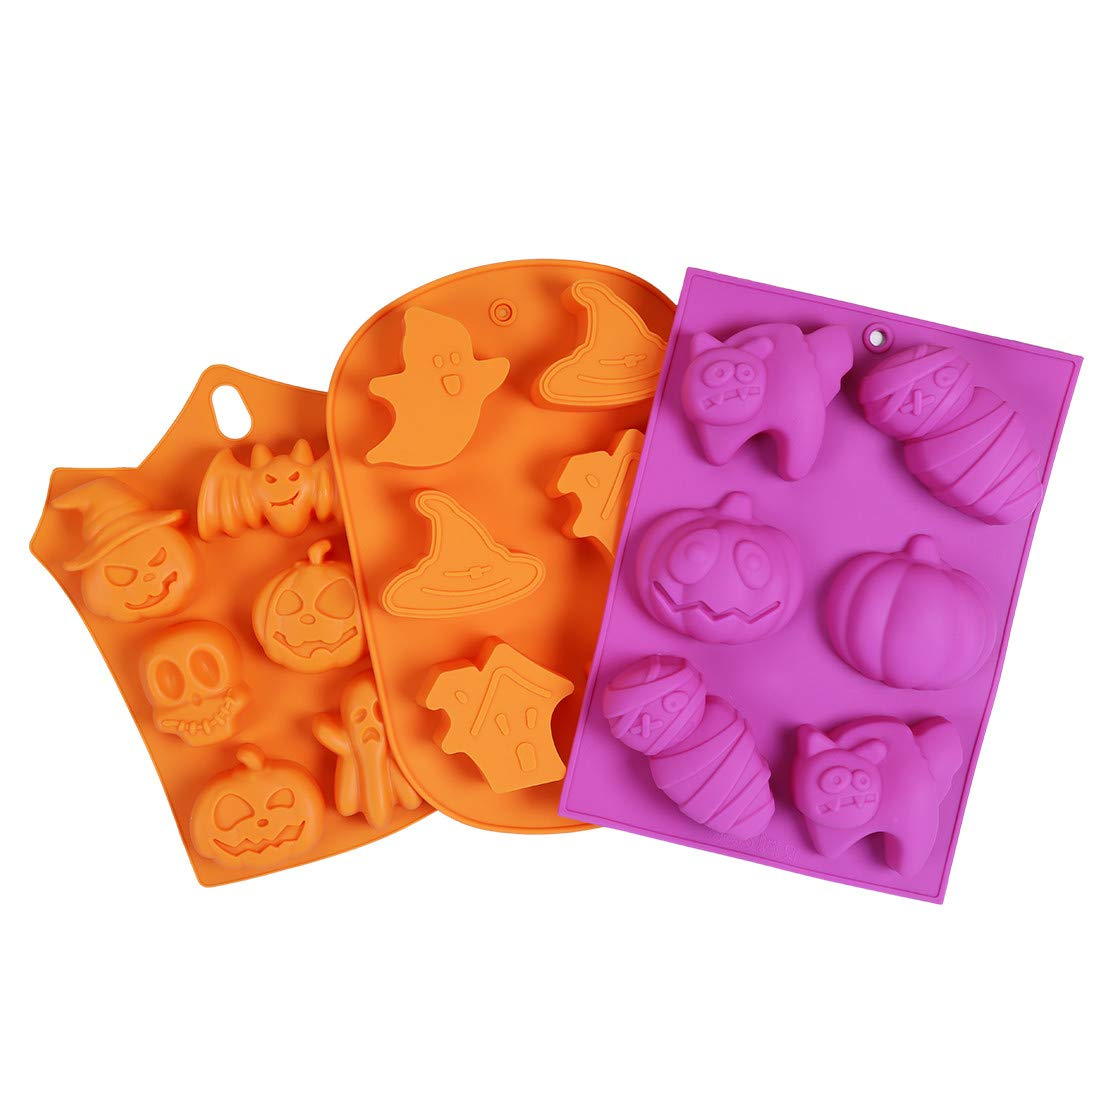 HomyPlaza Halloween silicone baking mold Muffin Mold with Pumpkin, Evil, Skull, Ghost - Perfect to Make Pudding, Ice Cube, Chocolate